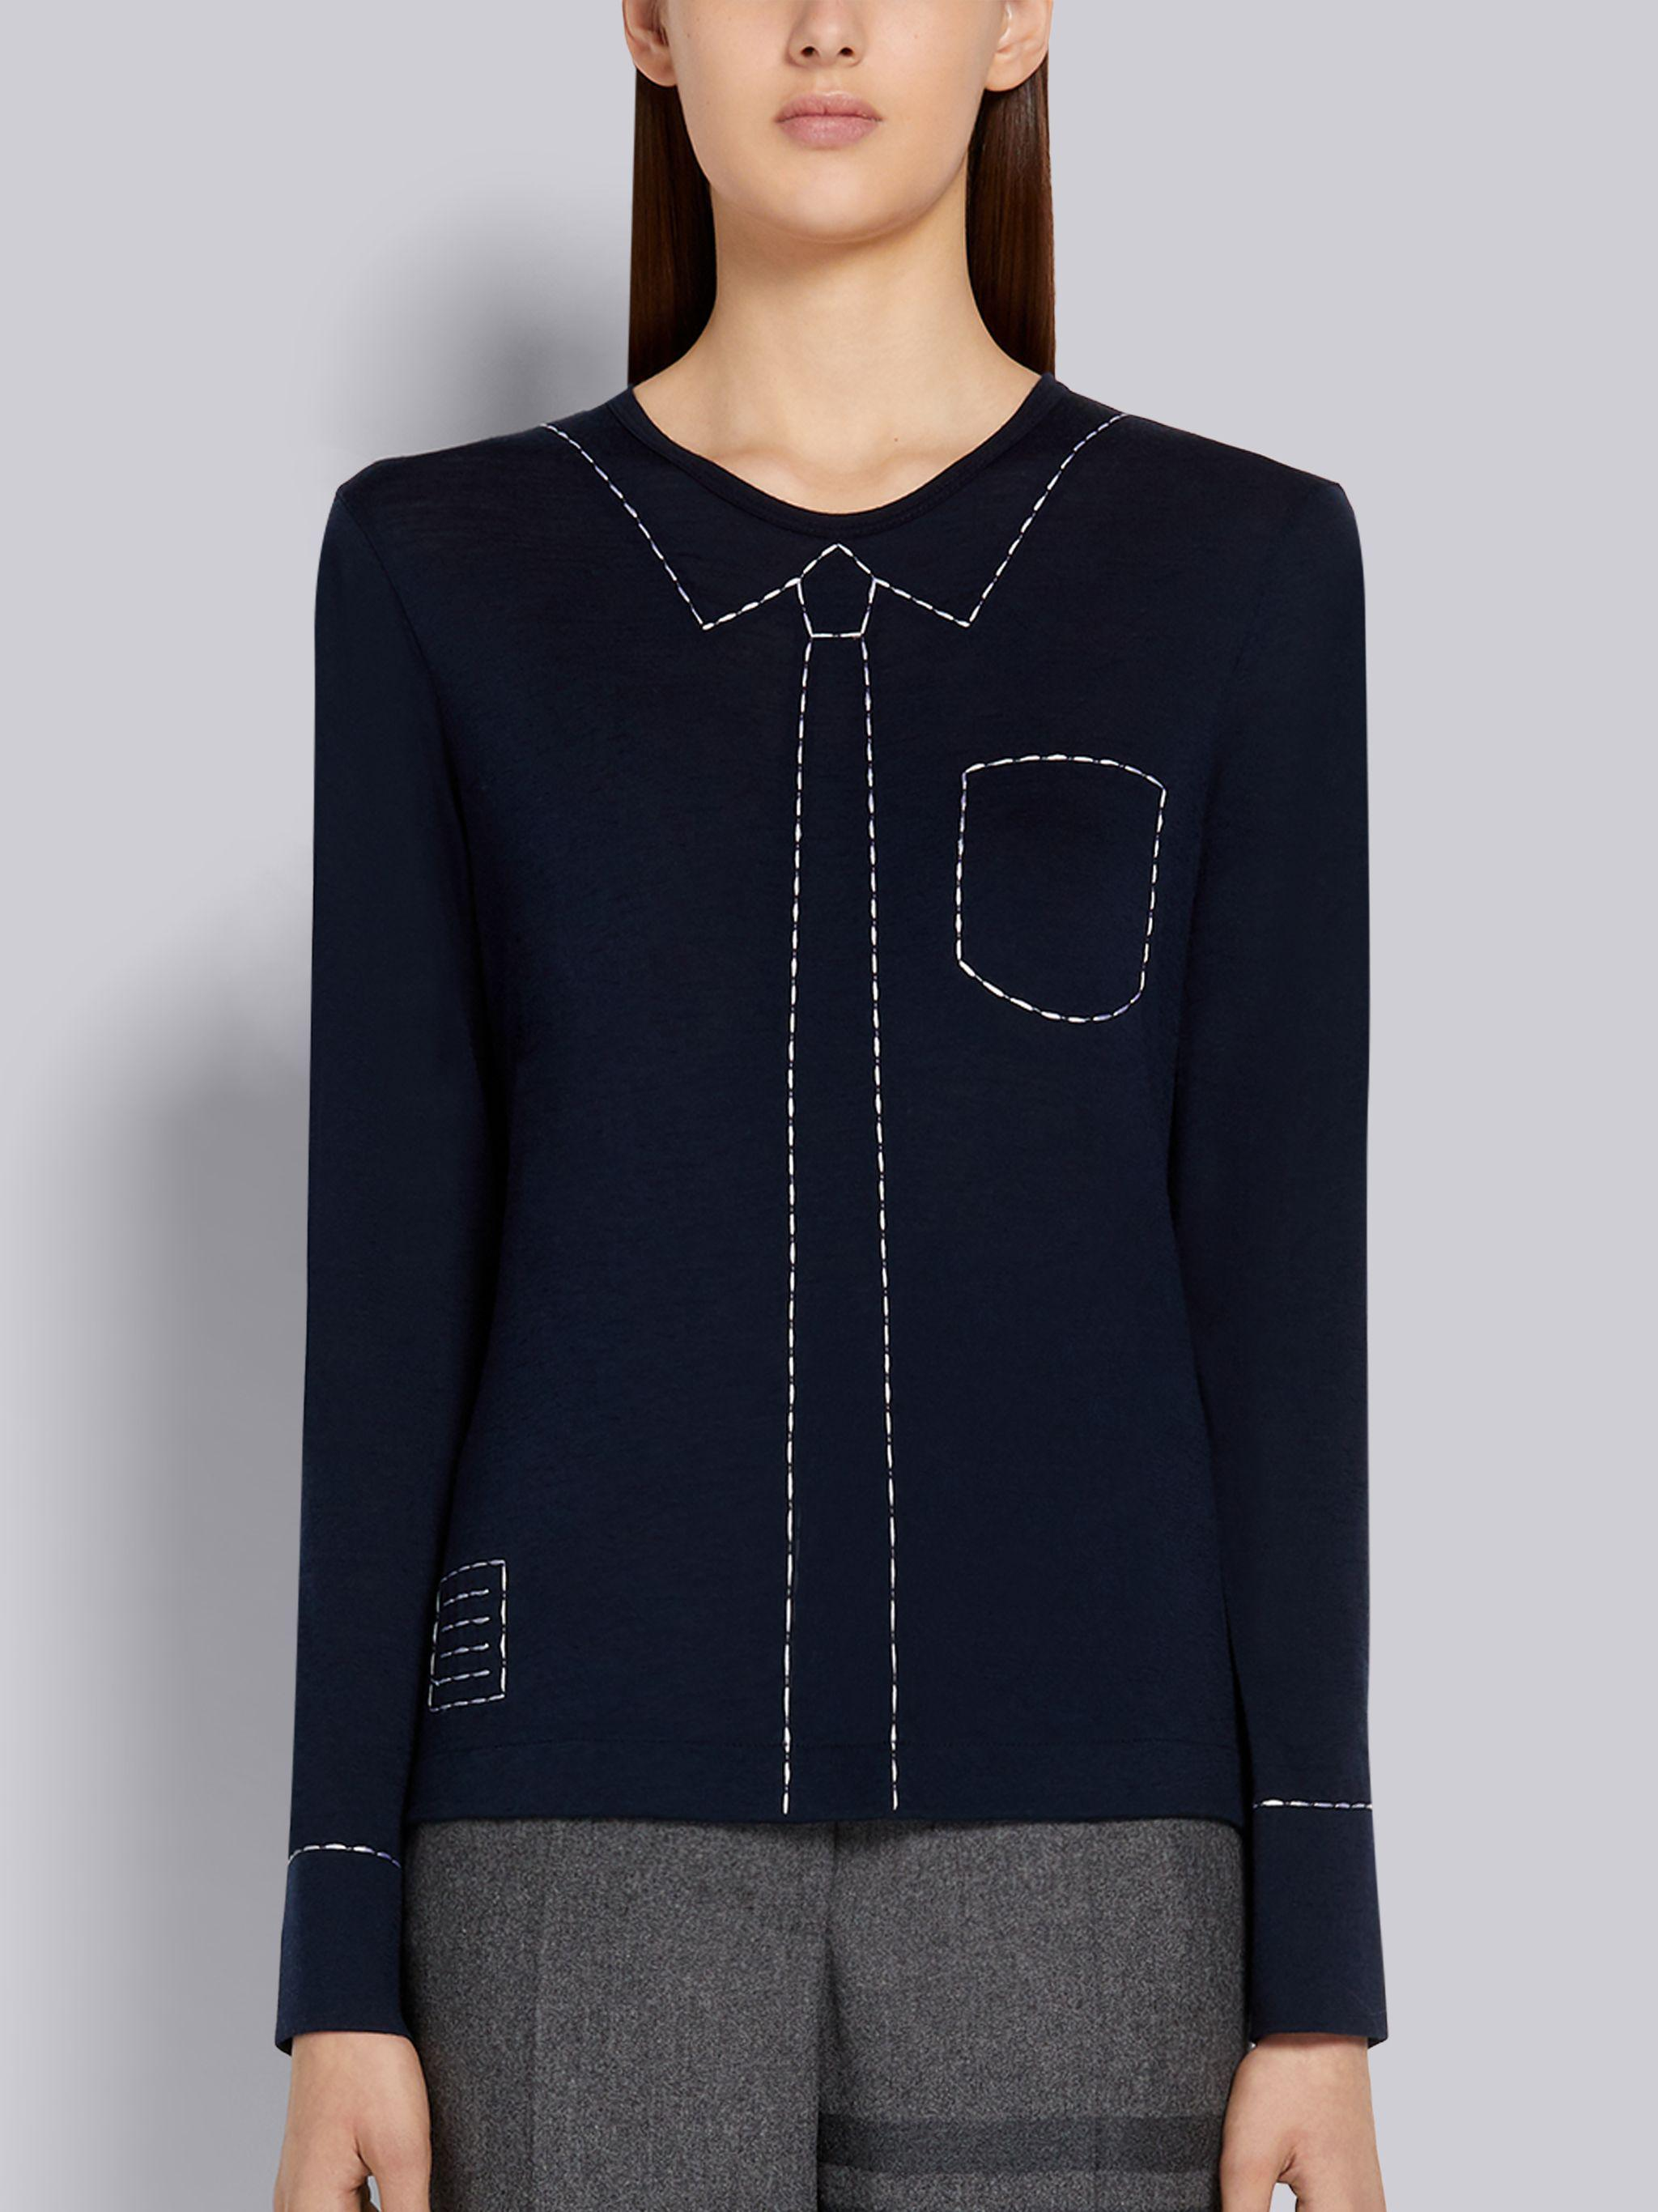 Navy Wool Jersey Trompe L'oeil Embroidery Stitching Long-sleeved Tee